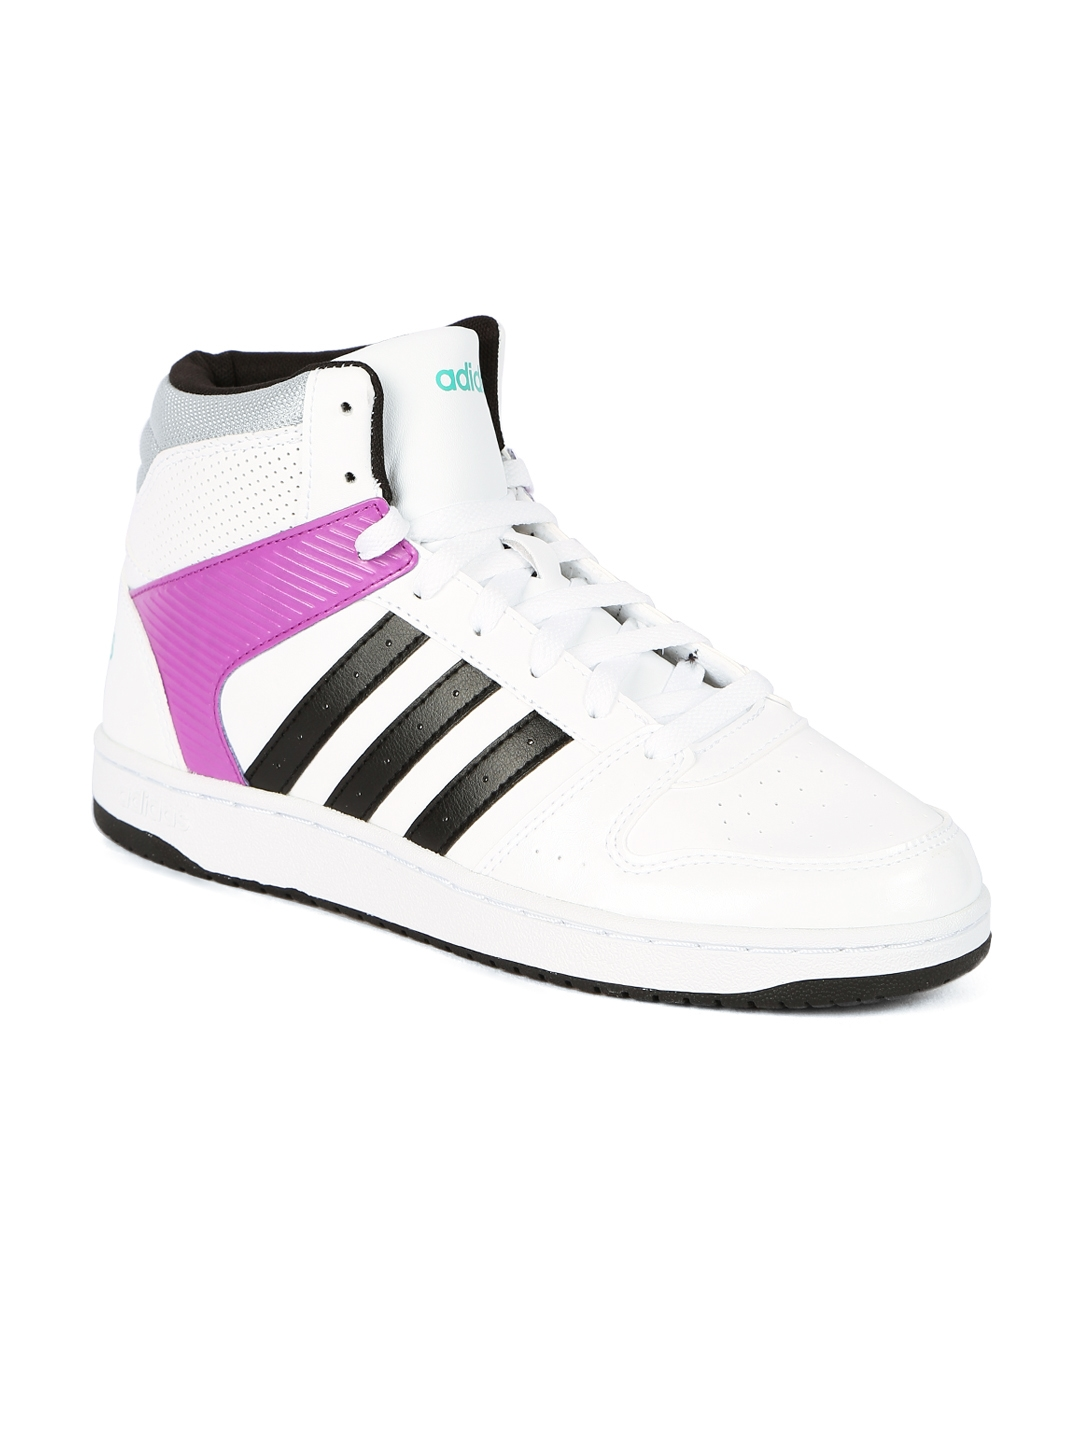 new style 035dc b7a47 ADIDAS NEO Women White VS HOOPSTER Sneakers